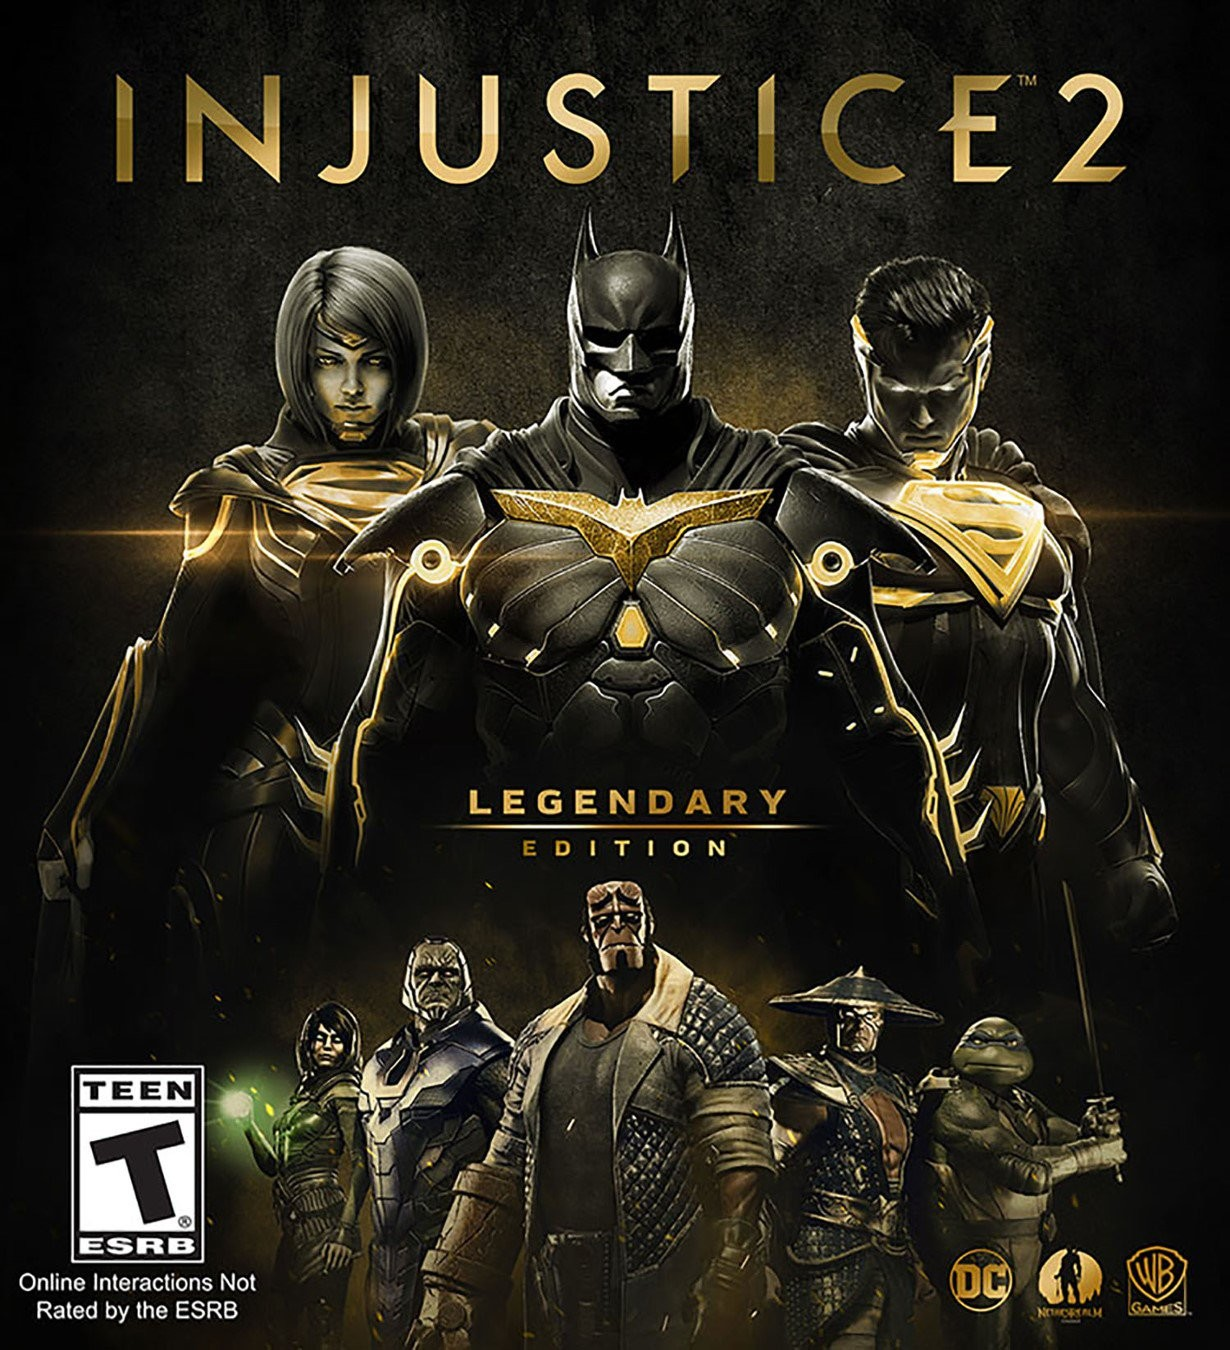 Injustice 2: Legendary Edition will be available on March 27